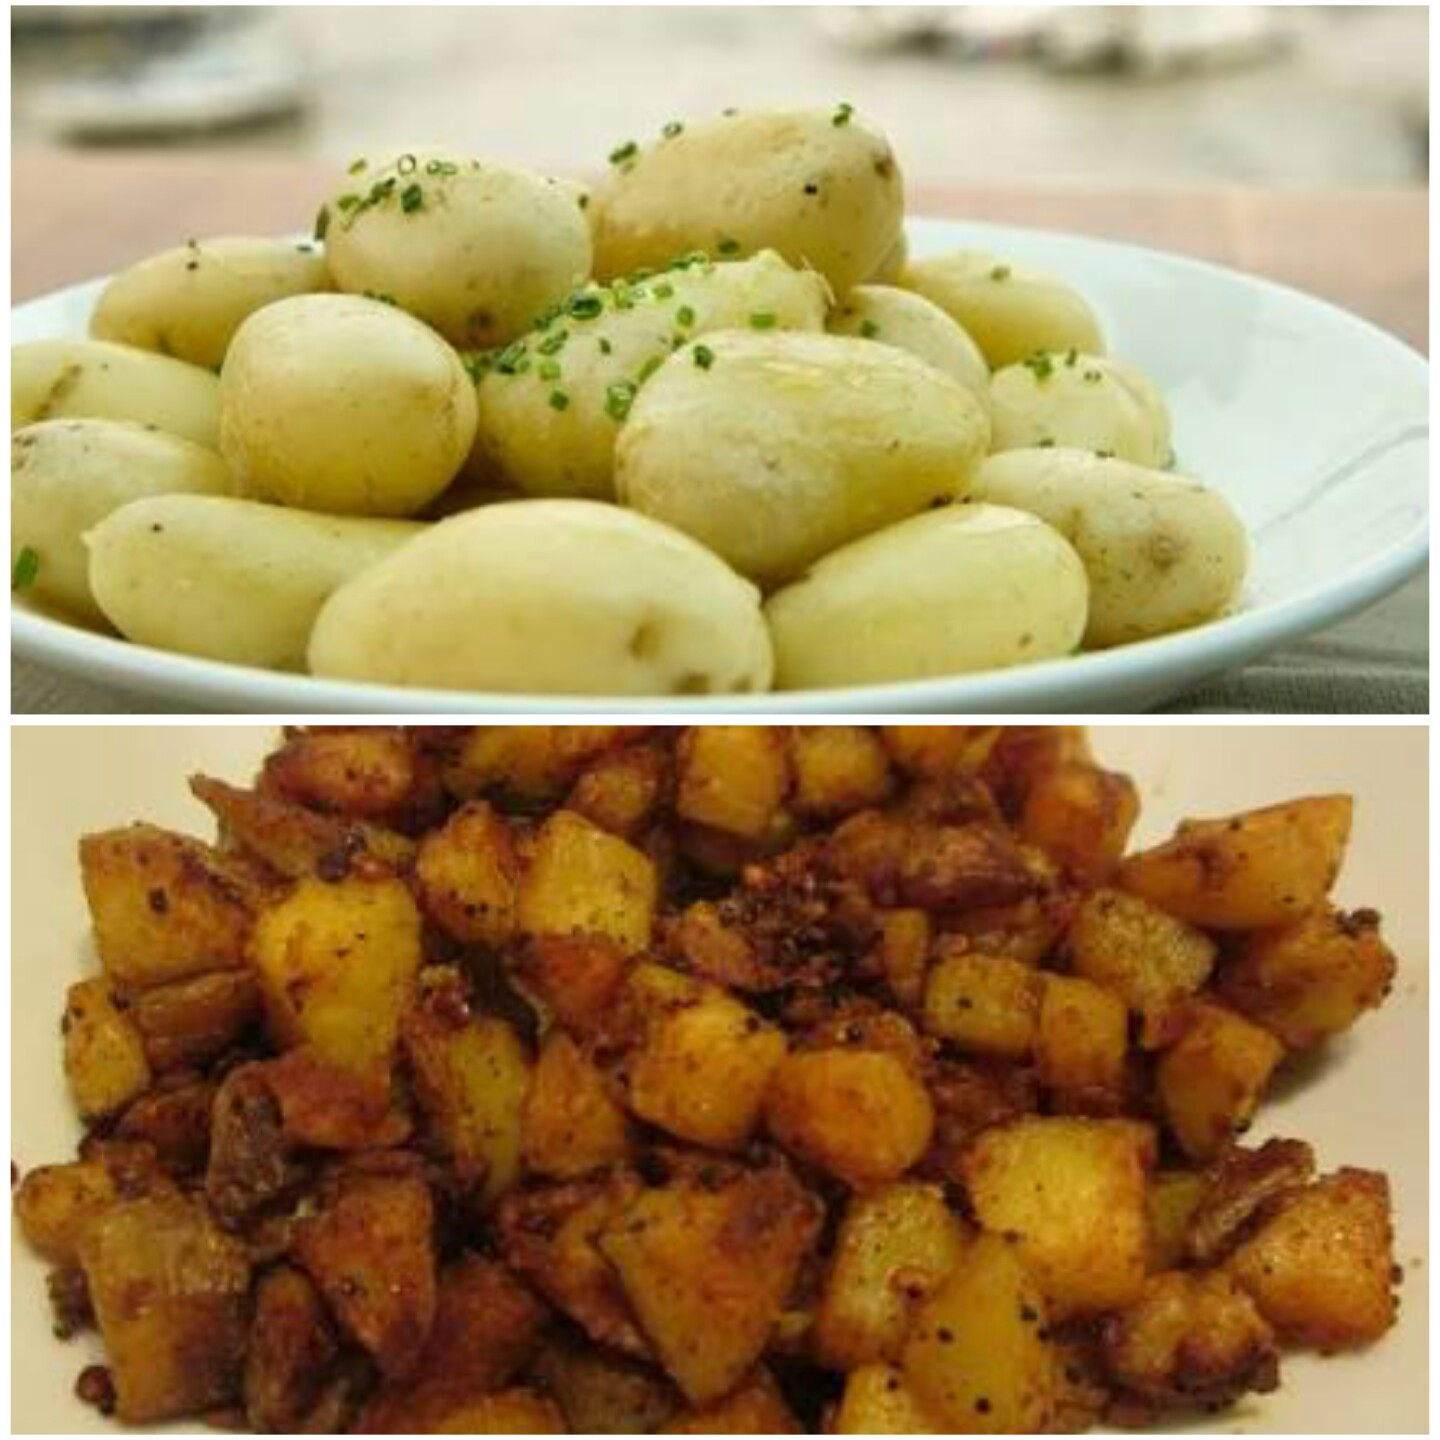 Potato with better benefits when boiled